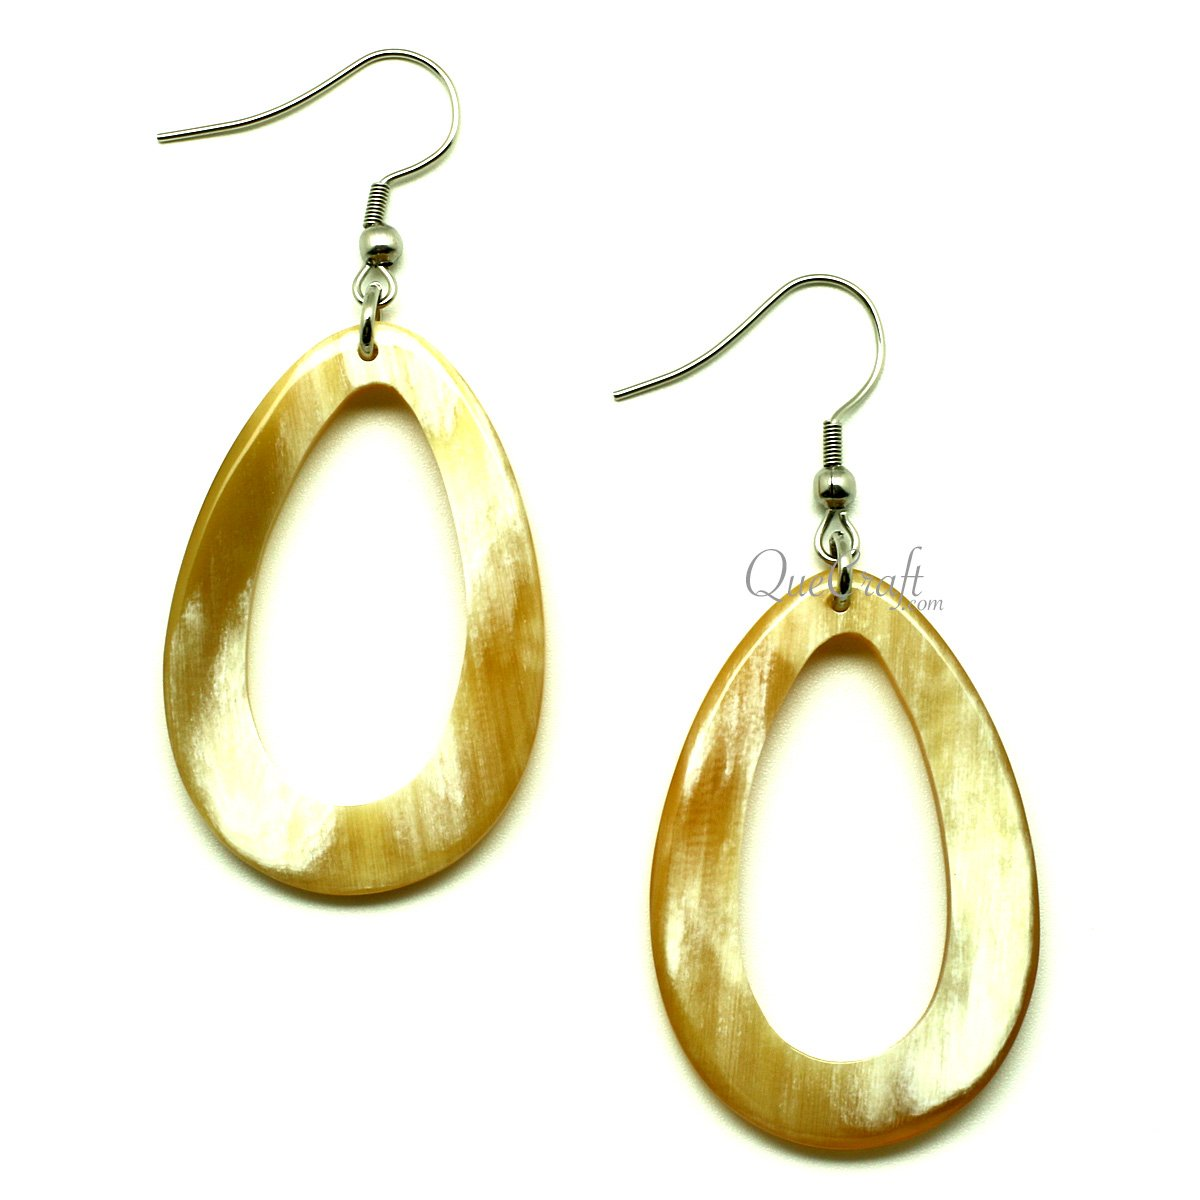 Horn Earrings #13043 - HORN.JEWELRY by QueCraft